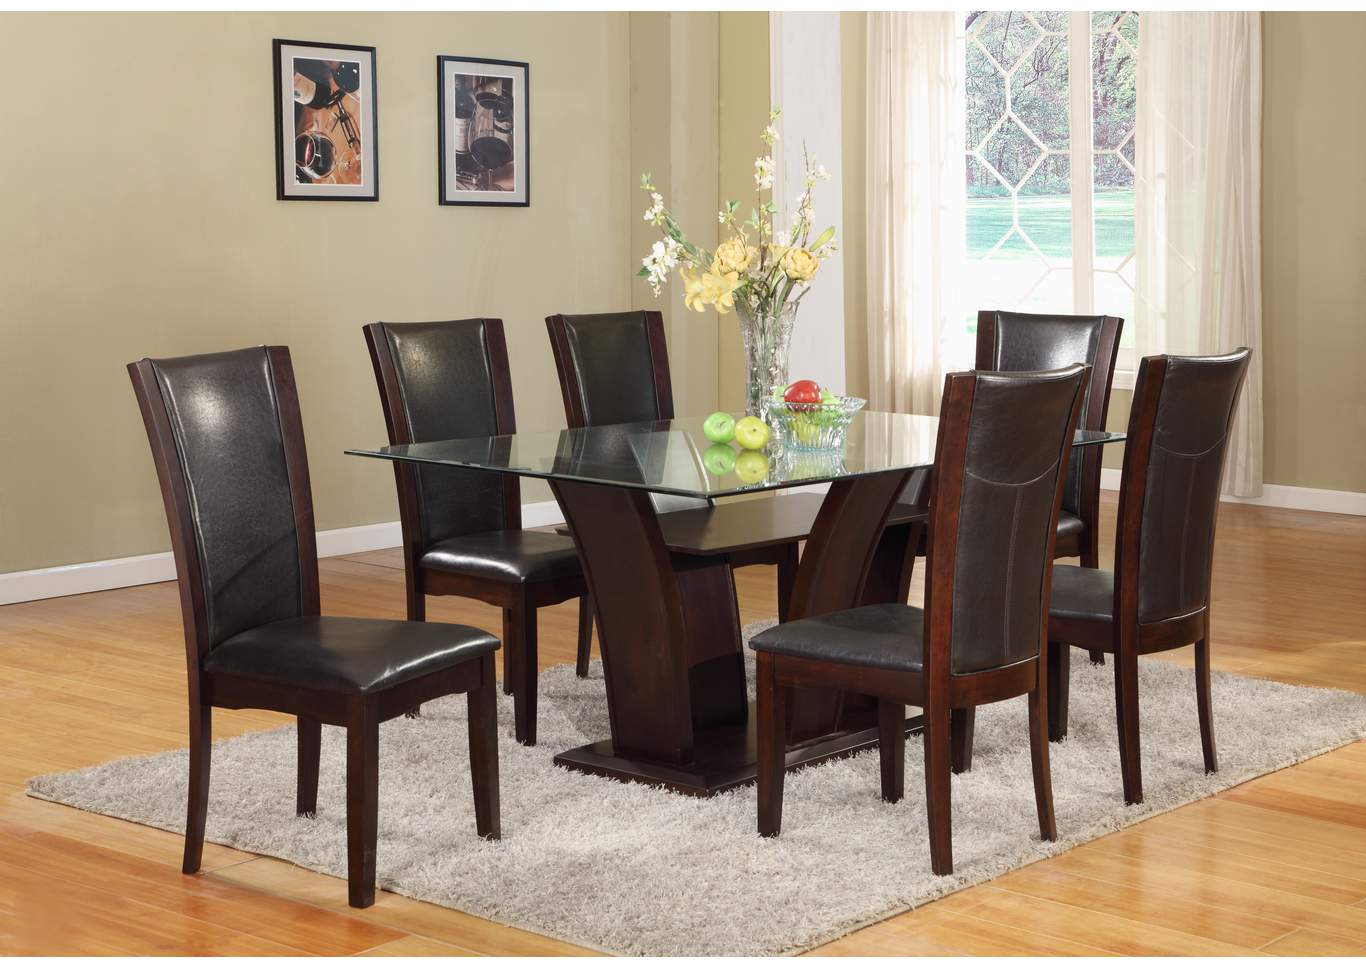 Camelia Rectangular Glass Top Dining Room Table w/6 Espresso Side Chairs,Crown Mark